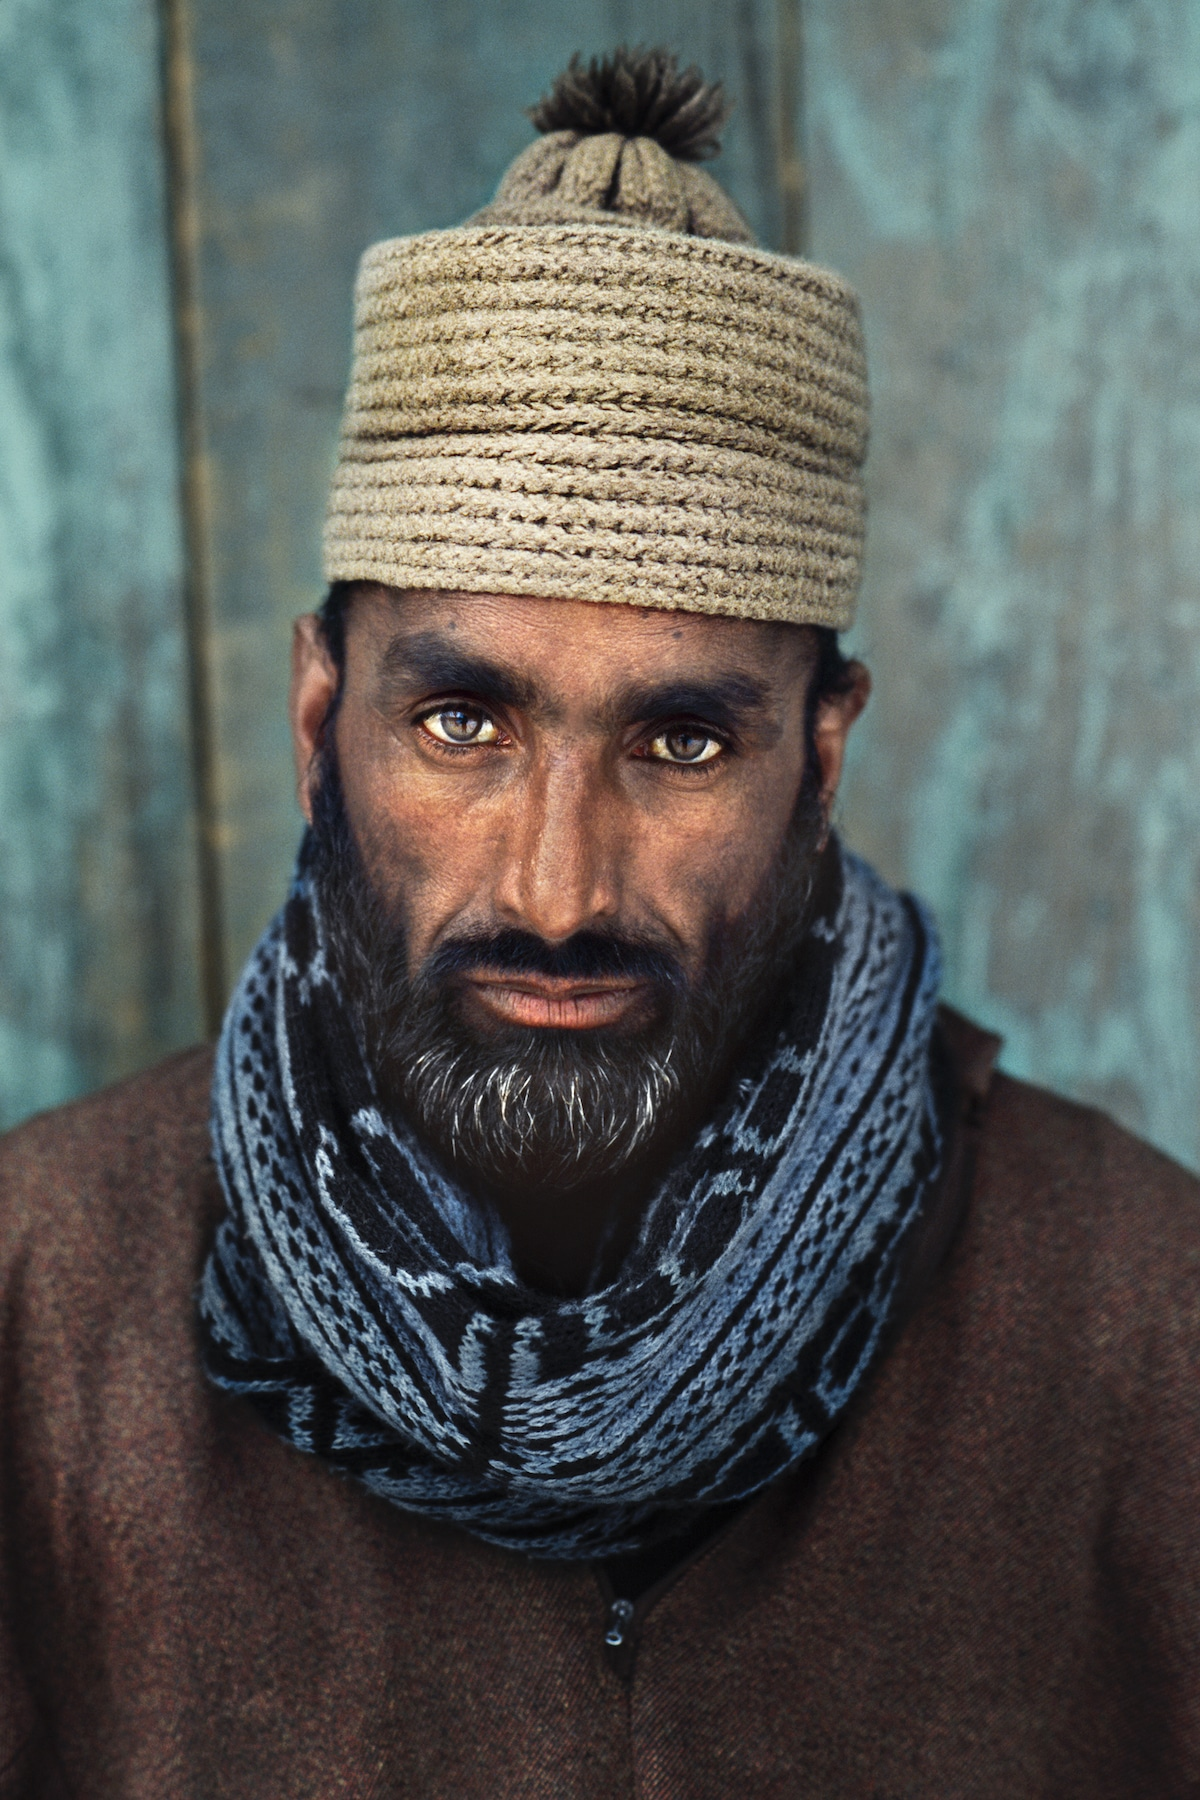 Portrait of a Main in Kashmir by Steve McCurry